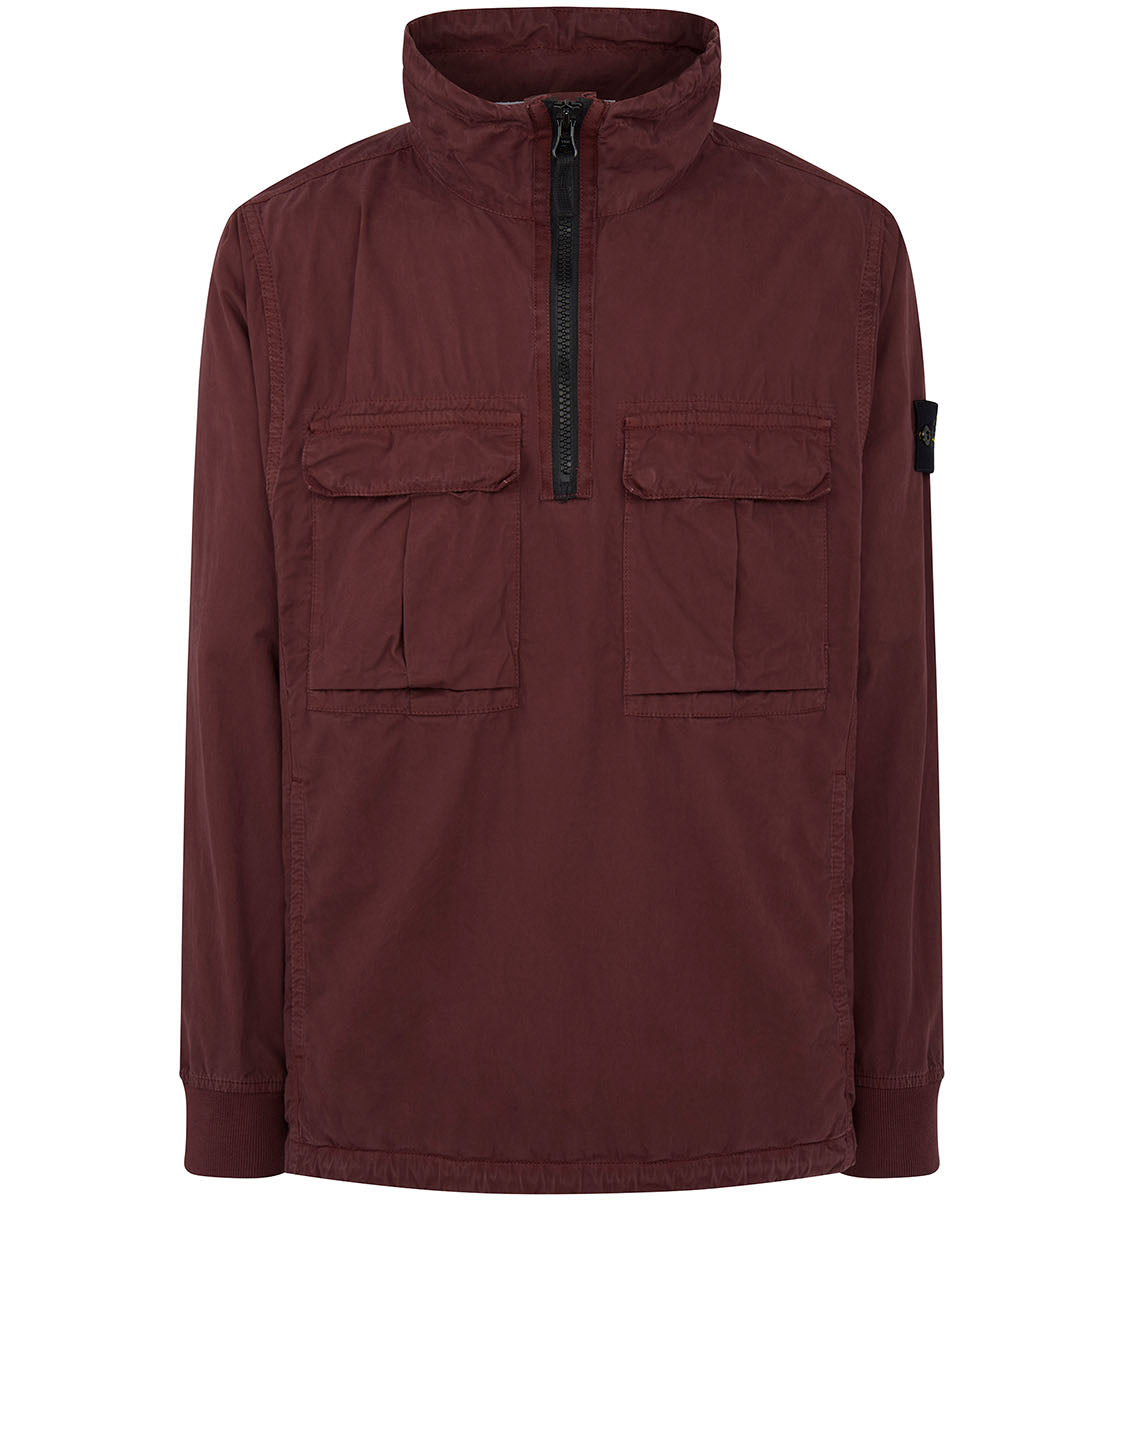 117WN 'OLD' DYE TREATMENT Overshirt in Dark Burgundy